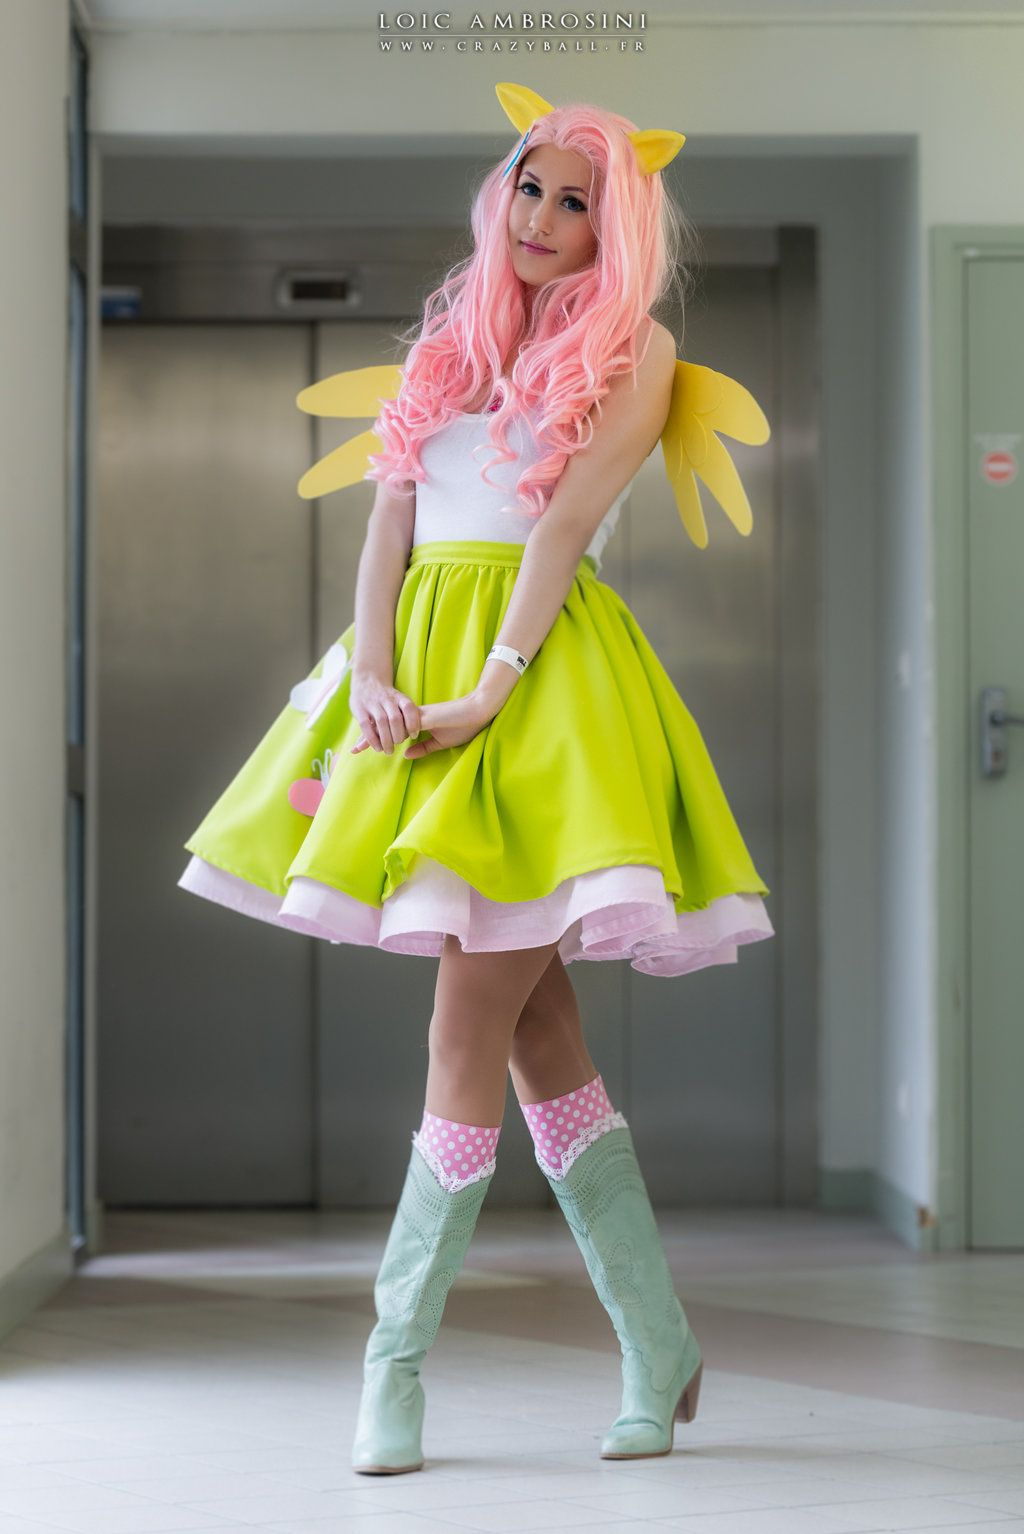 fluttershy | halloween - costumes | pinterest | fluttershy and